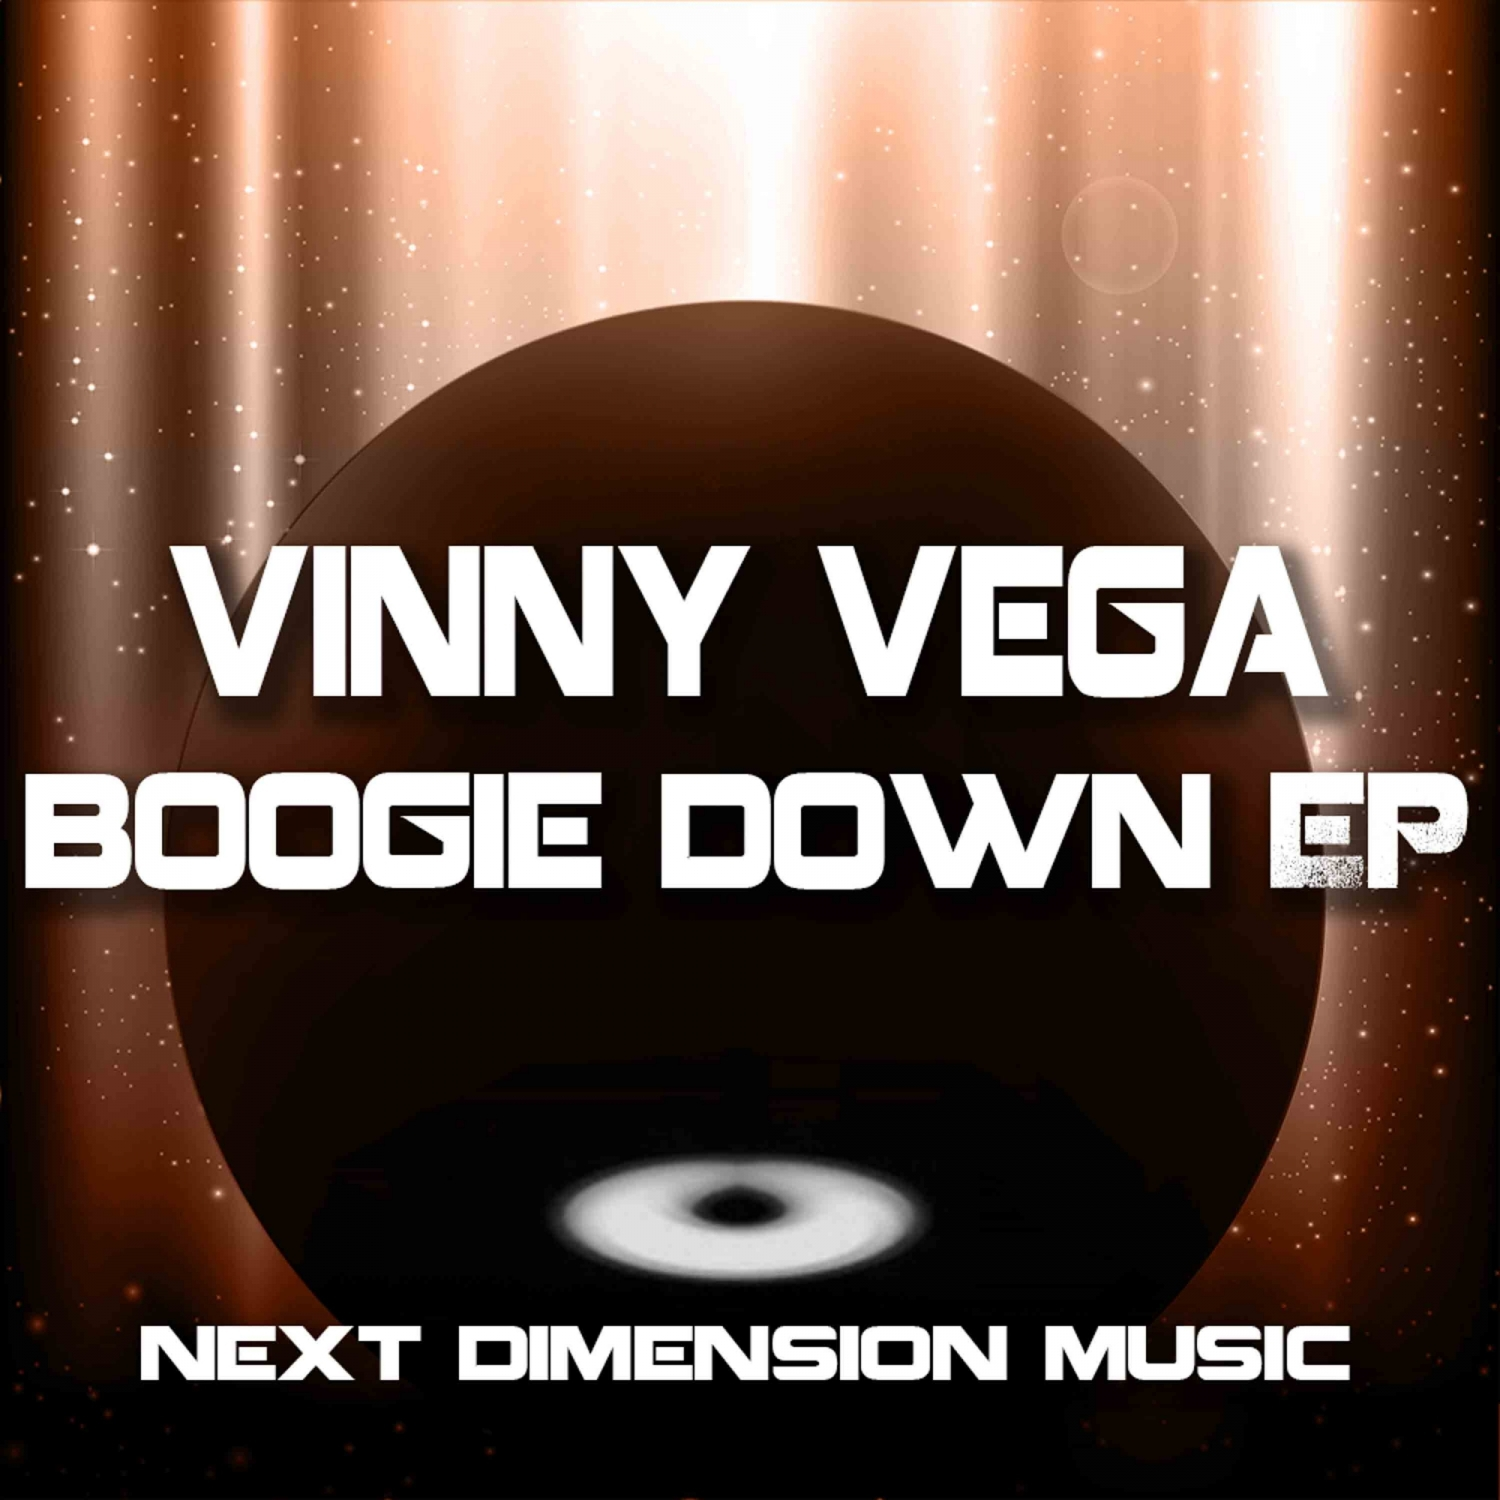 Vinny Vega - Funky Music (Original Mix)